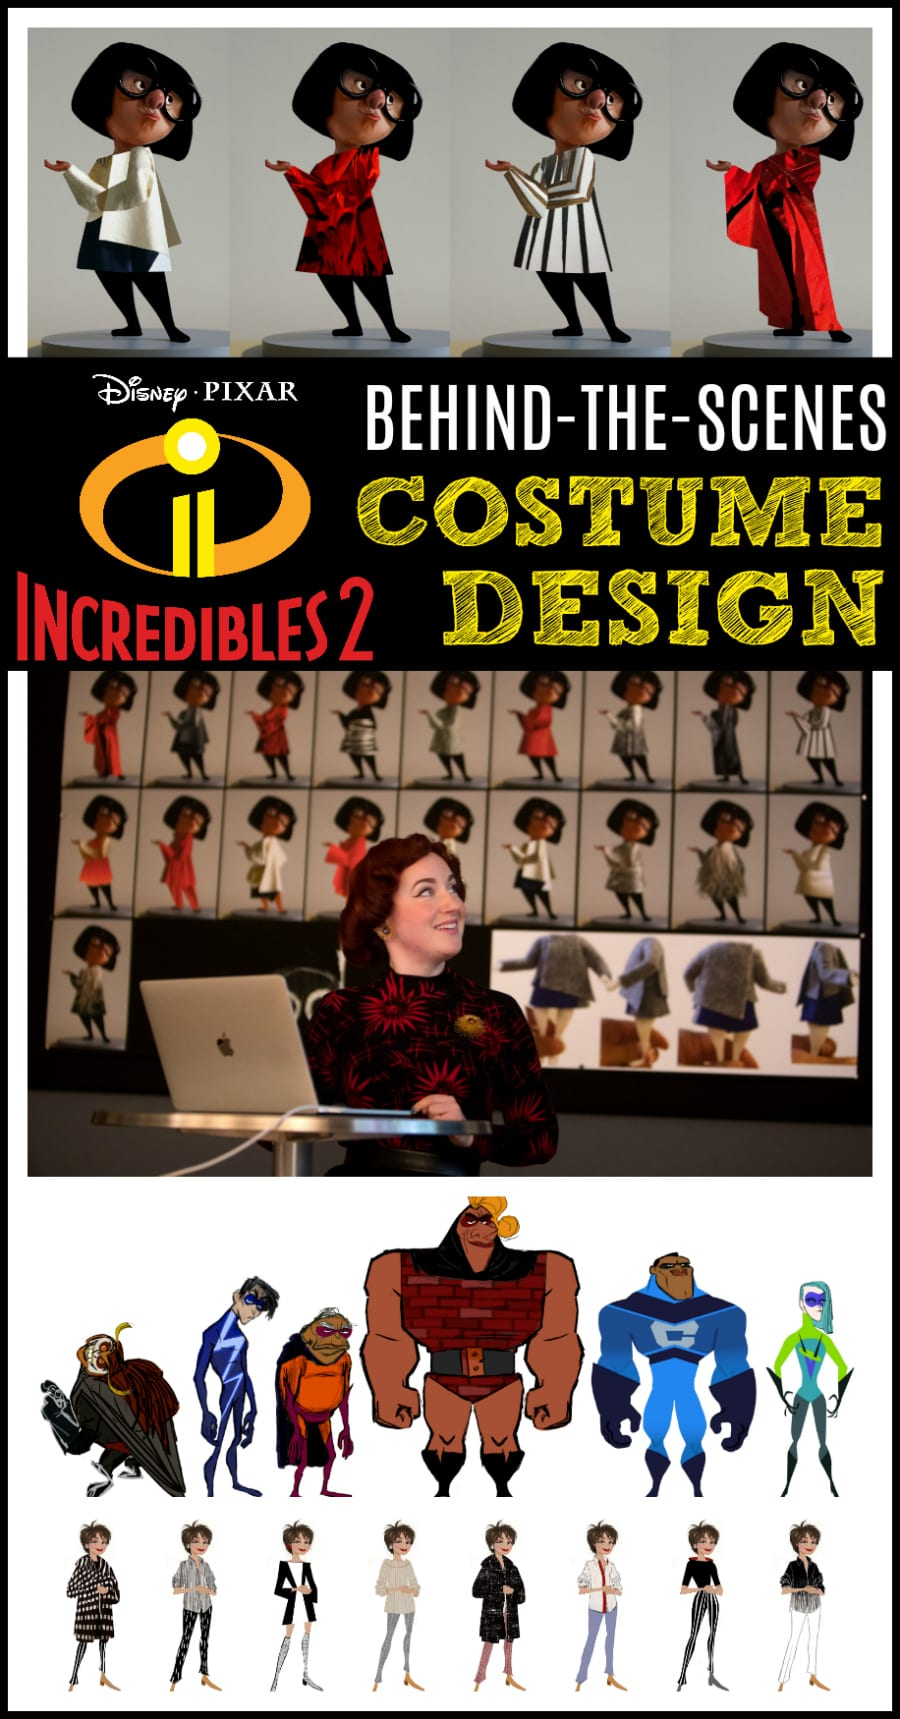 Incredibles 2 behind the scenes costumes